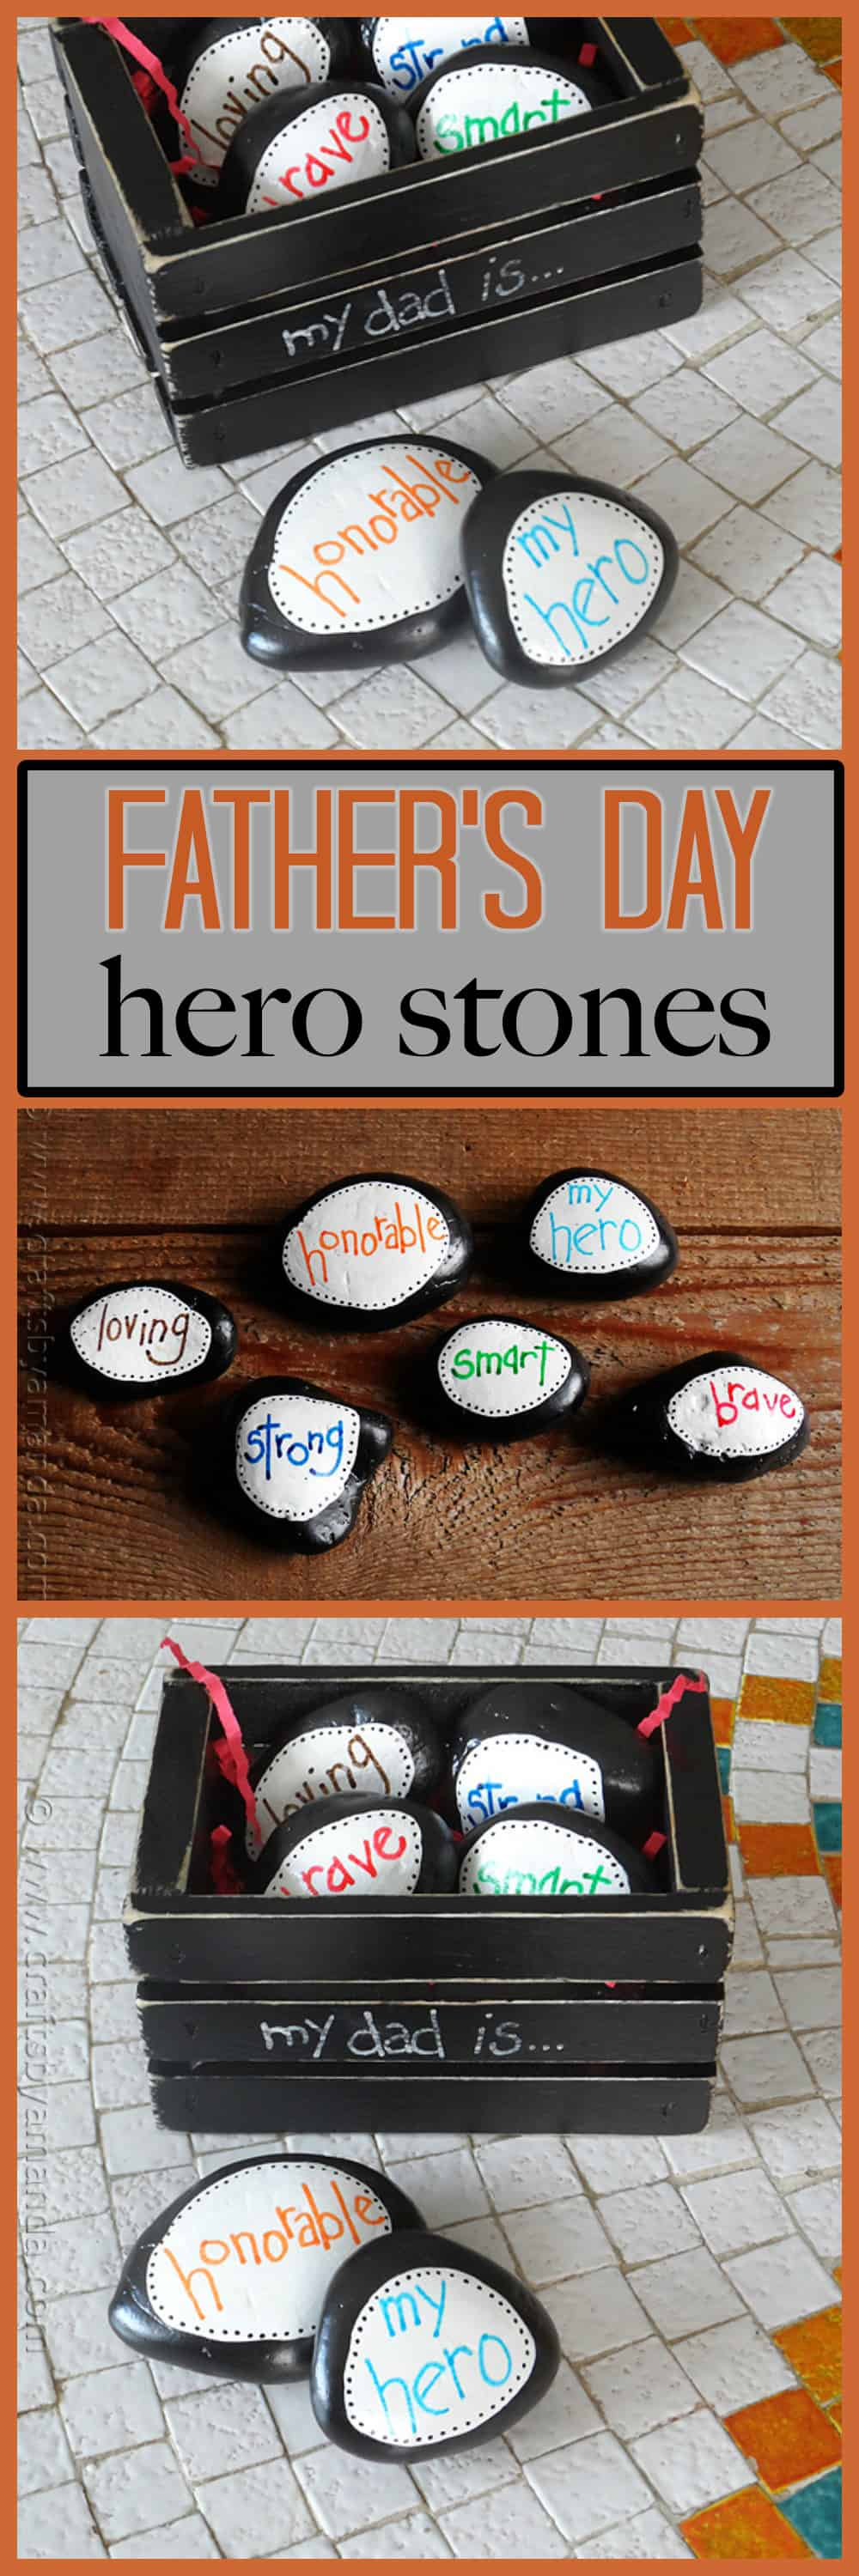 Paperweights have always made inexpensive and easy Father's Day gifts. Dad can use them at work at his desk, or at home in his own space. Plus, you customize these stones to let Dad know how you feel about him!